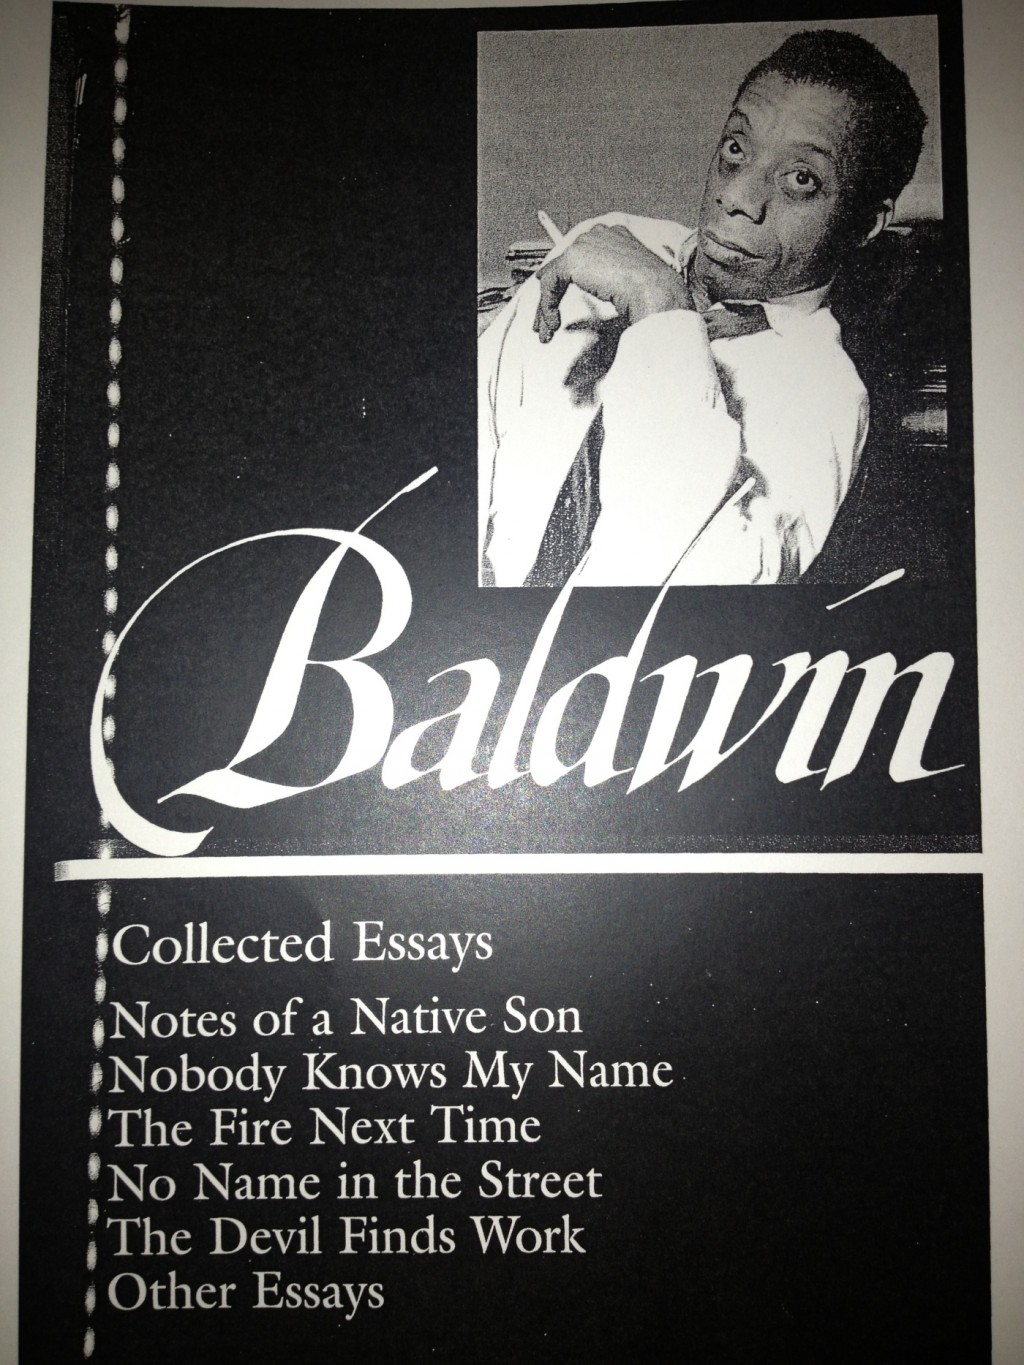 001 Img 4408w1400h9999 James Baldwin Collected Essays Essay Wondrous Google Books Pdf Table Of Contents Large